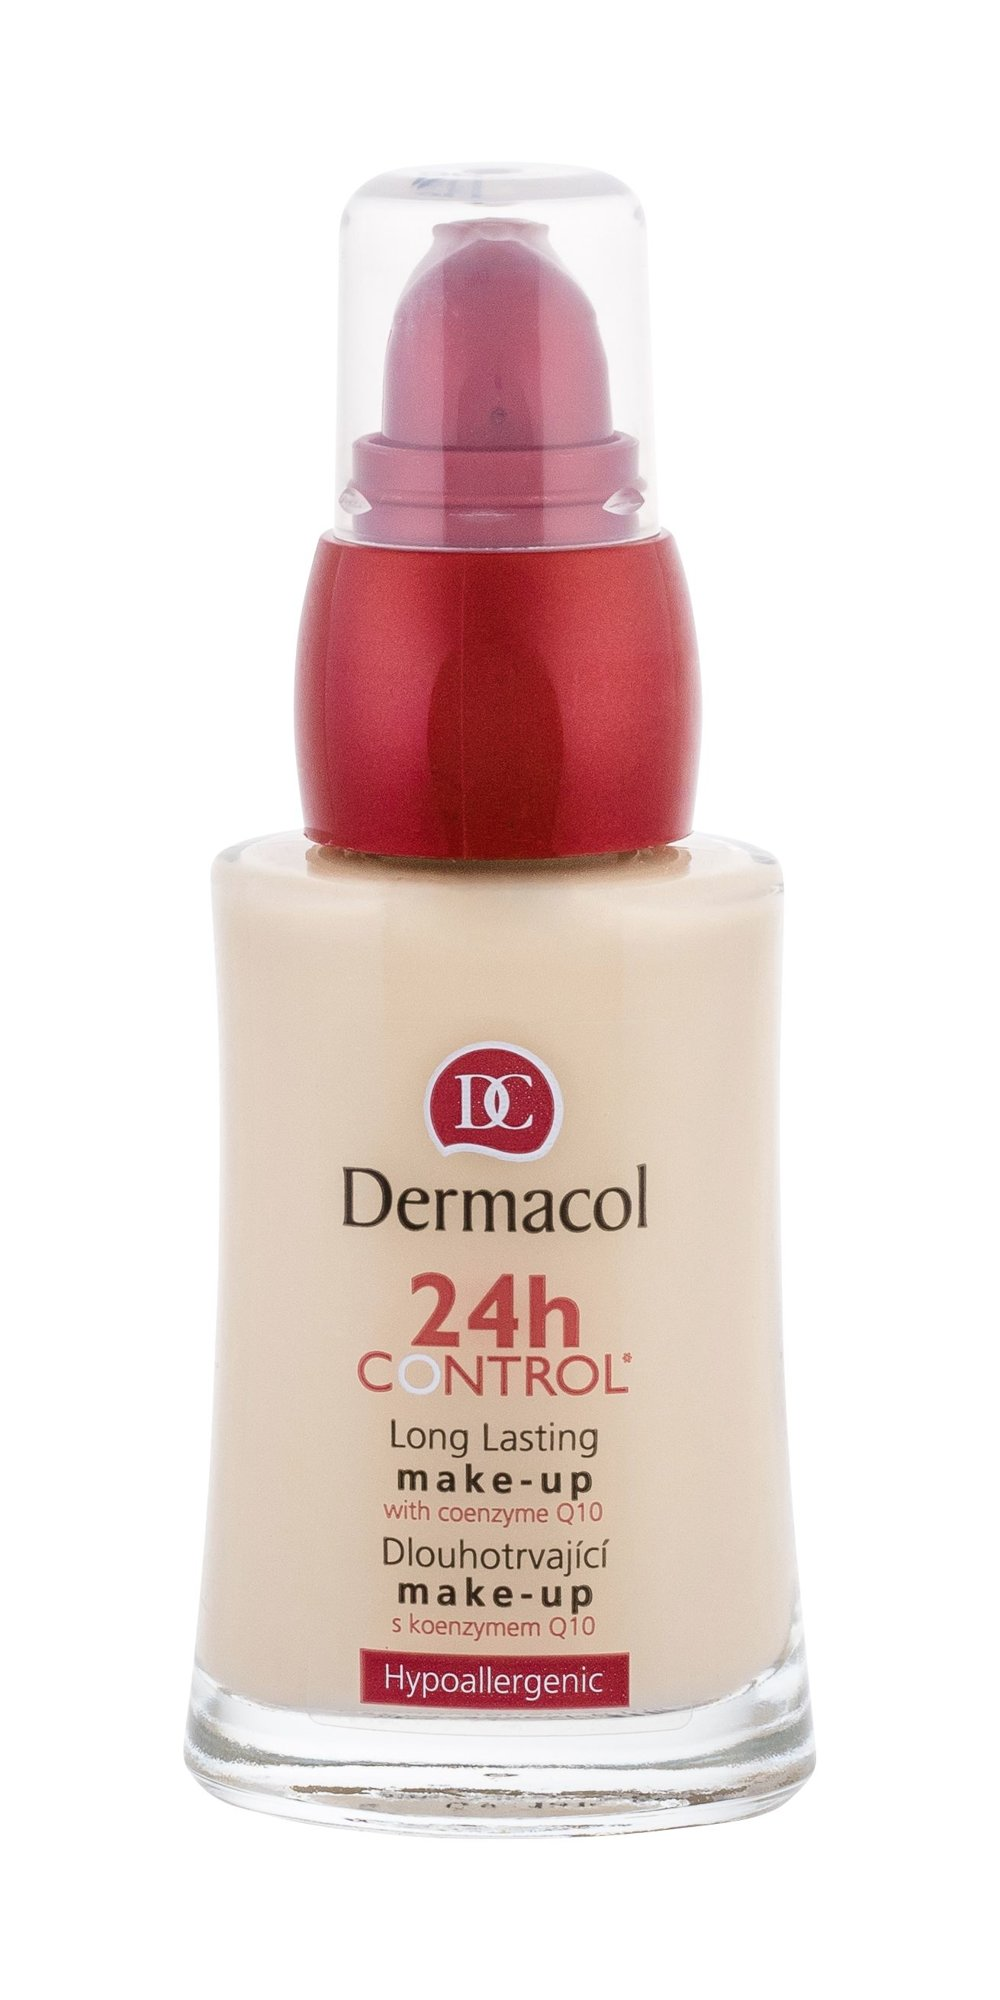 Dermacol 24h Control Makeup 30ml 80